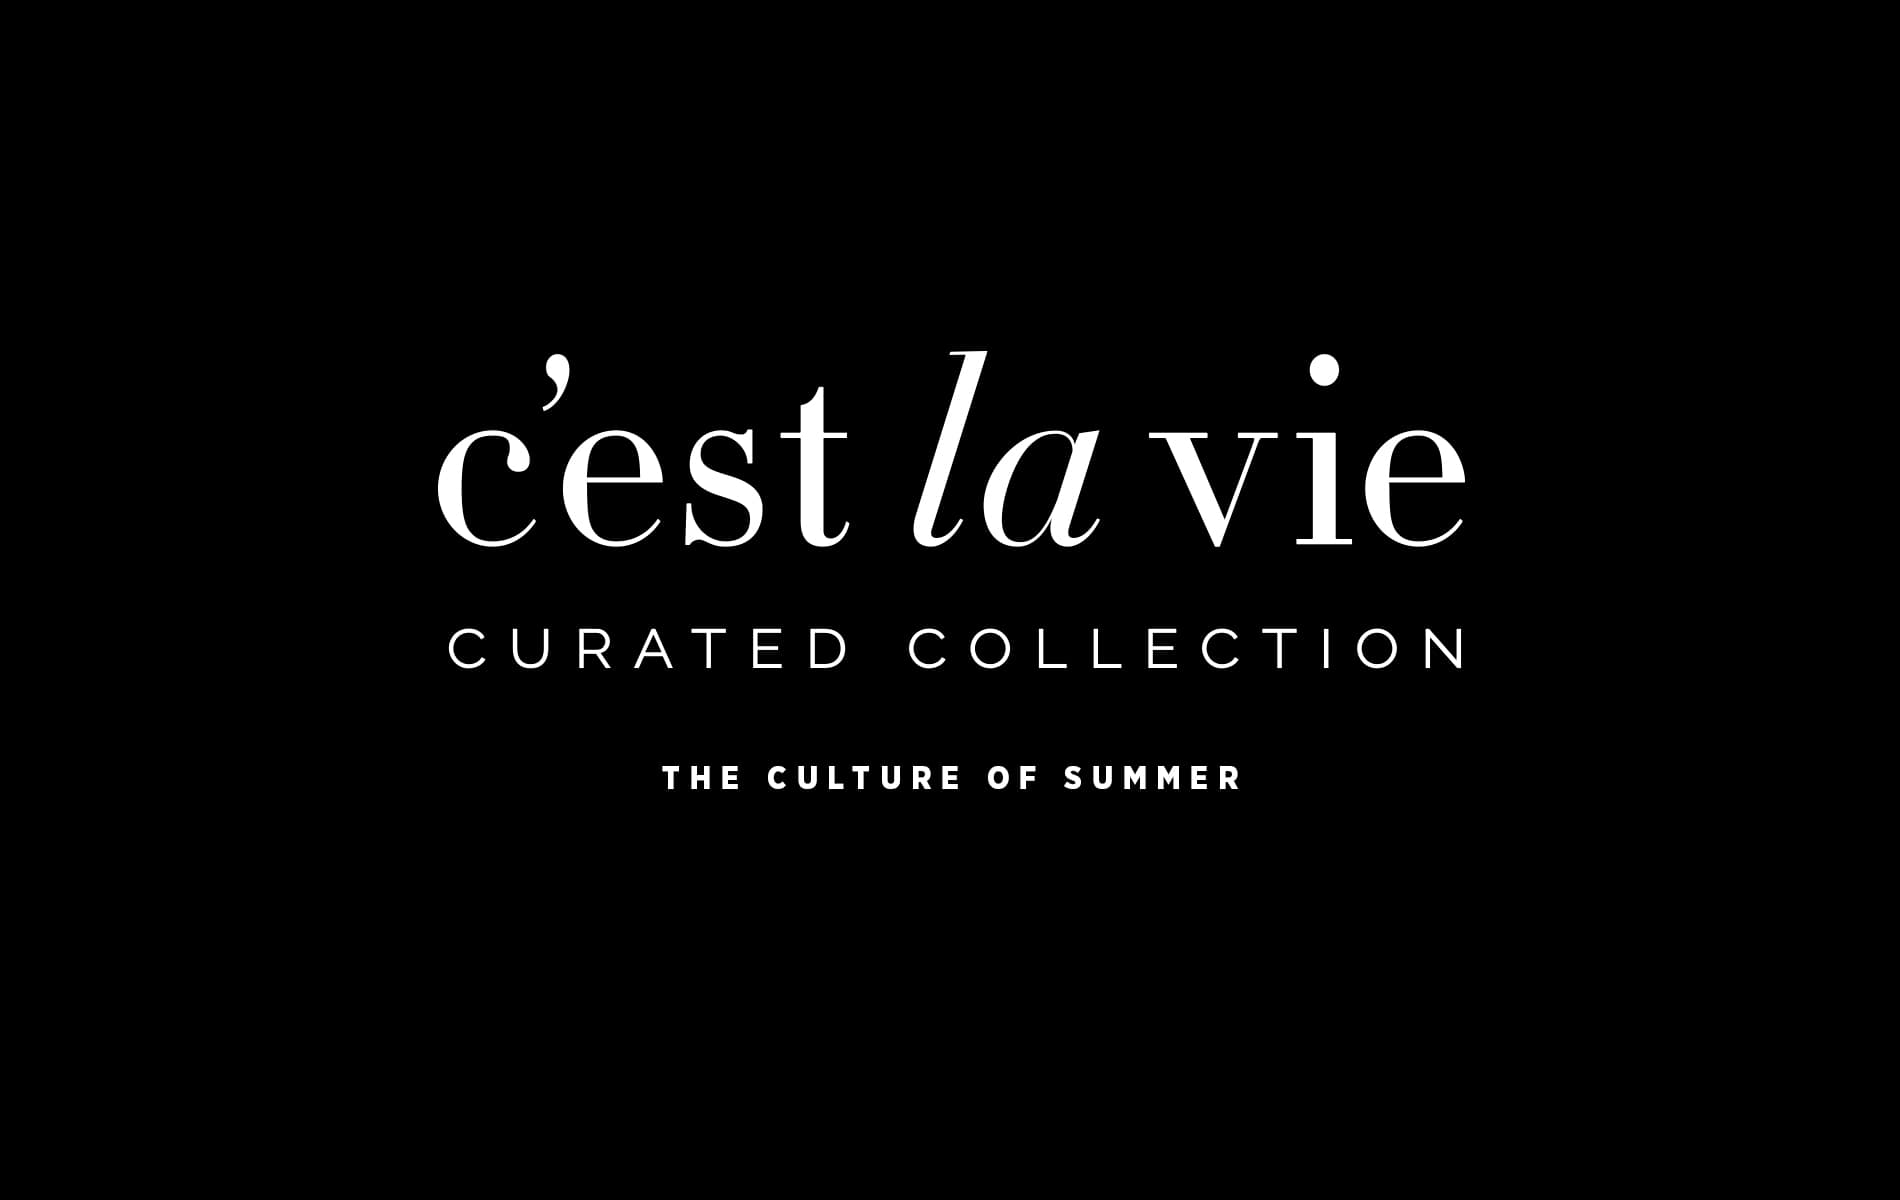 VIE Magazine, C'est la VIE A Curated Collection, the culture of summer